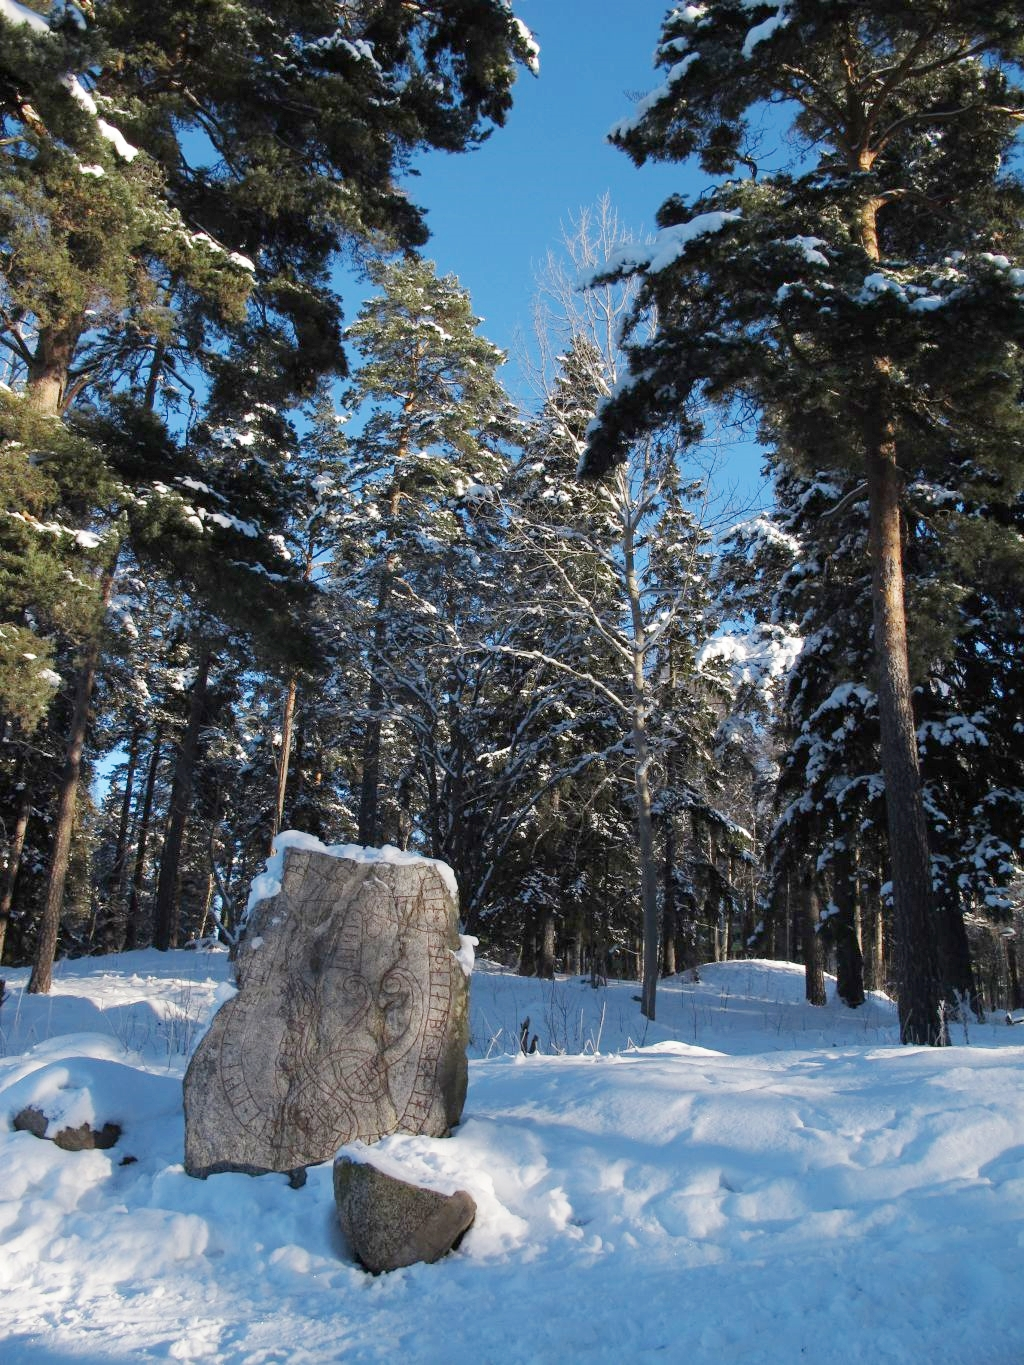 Rune stone in the snow, Stockholm, Sweden. Photo by susan wellington